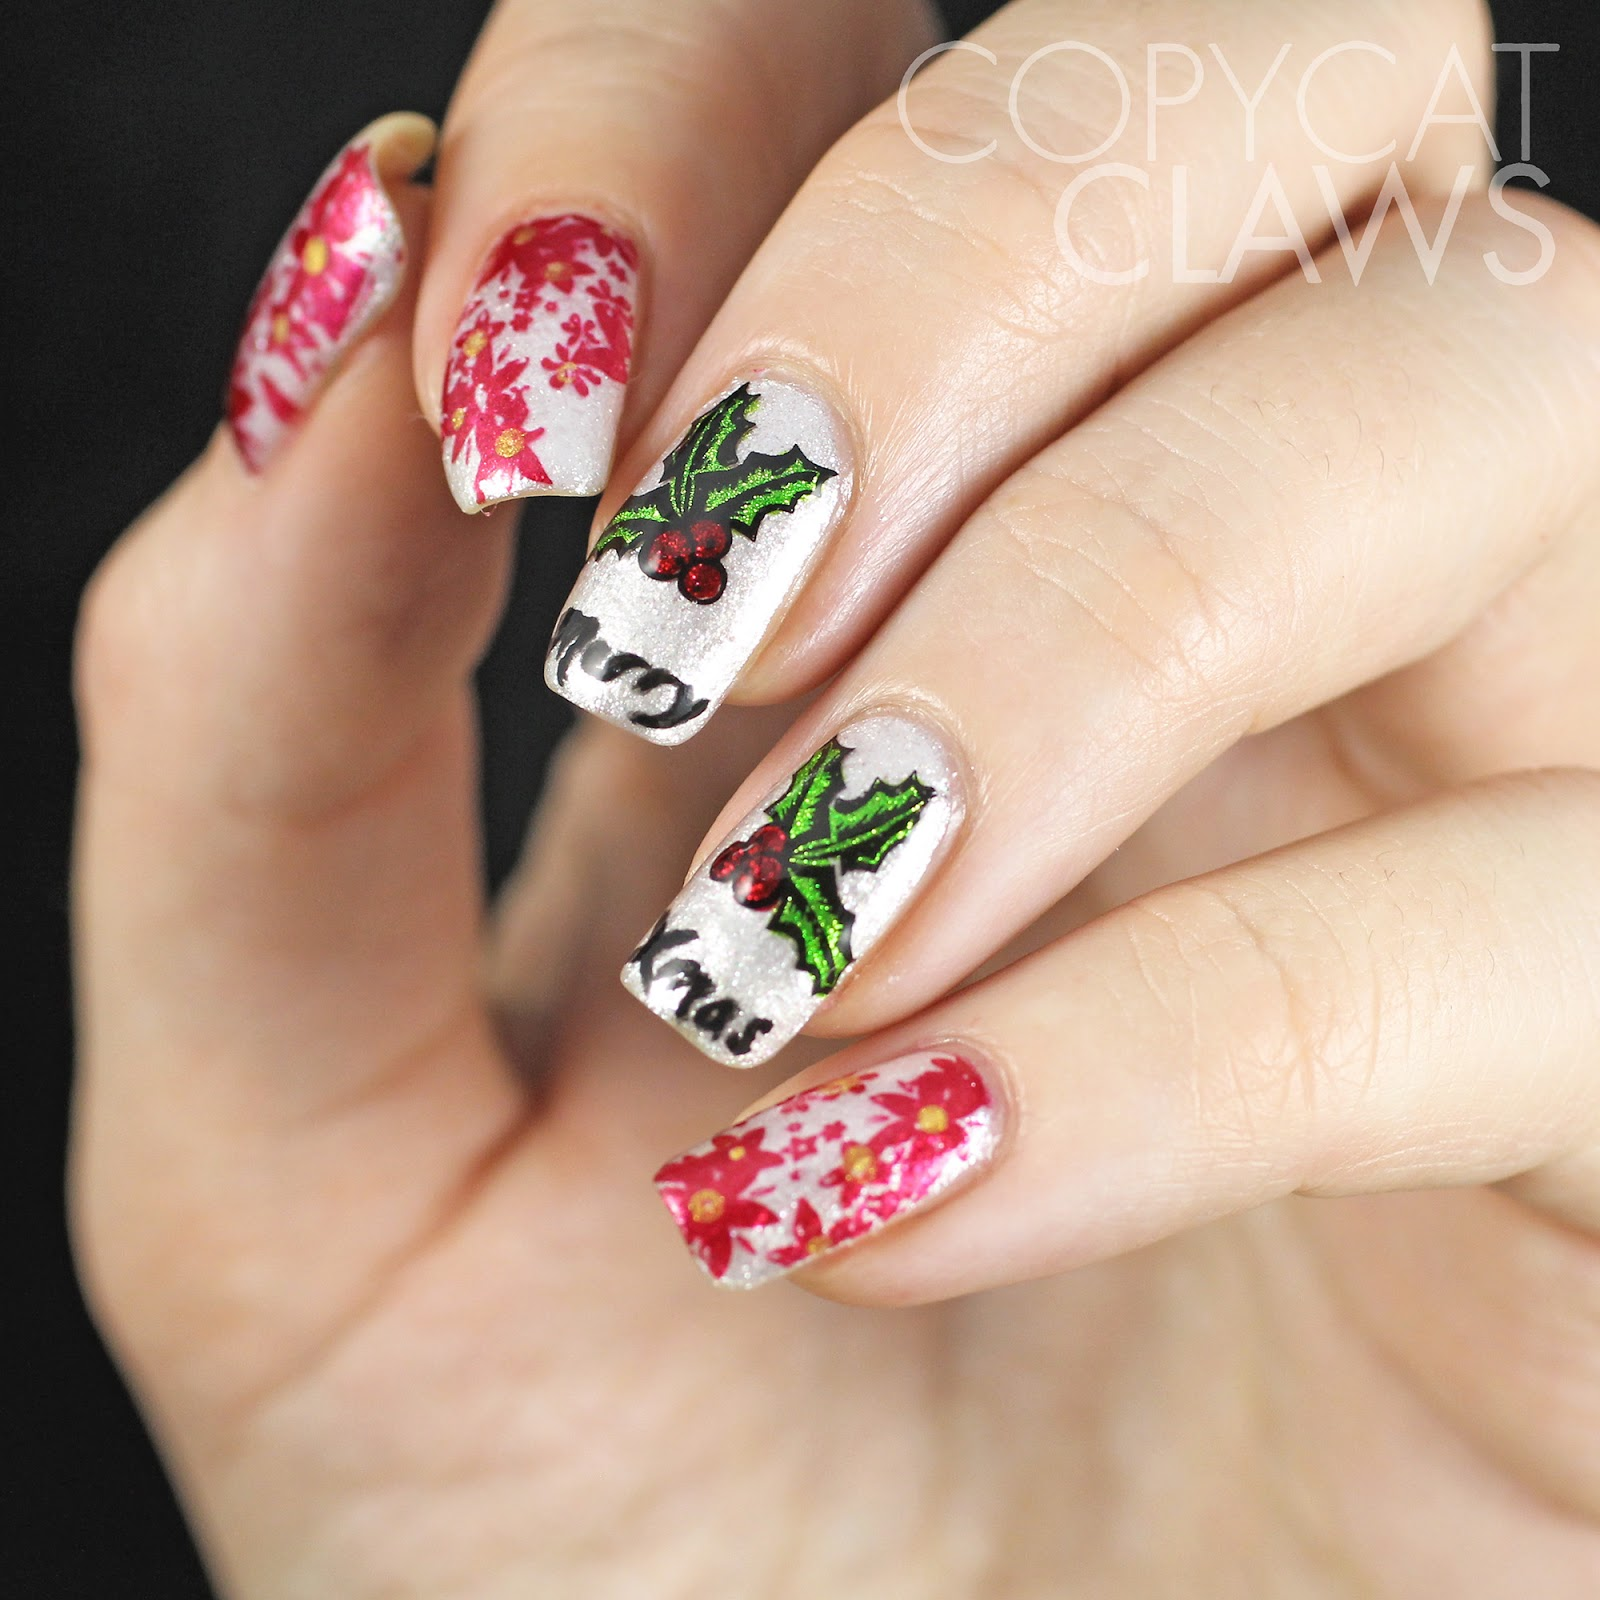 Christmas Nails On Black Hands: Copycat Claws: Sunday Stamping